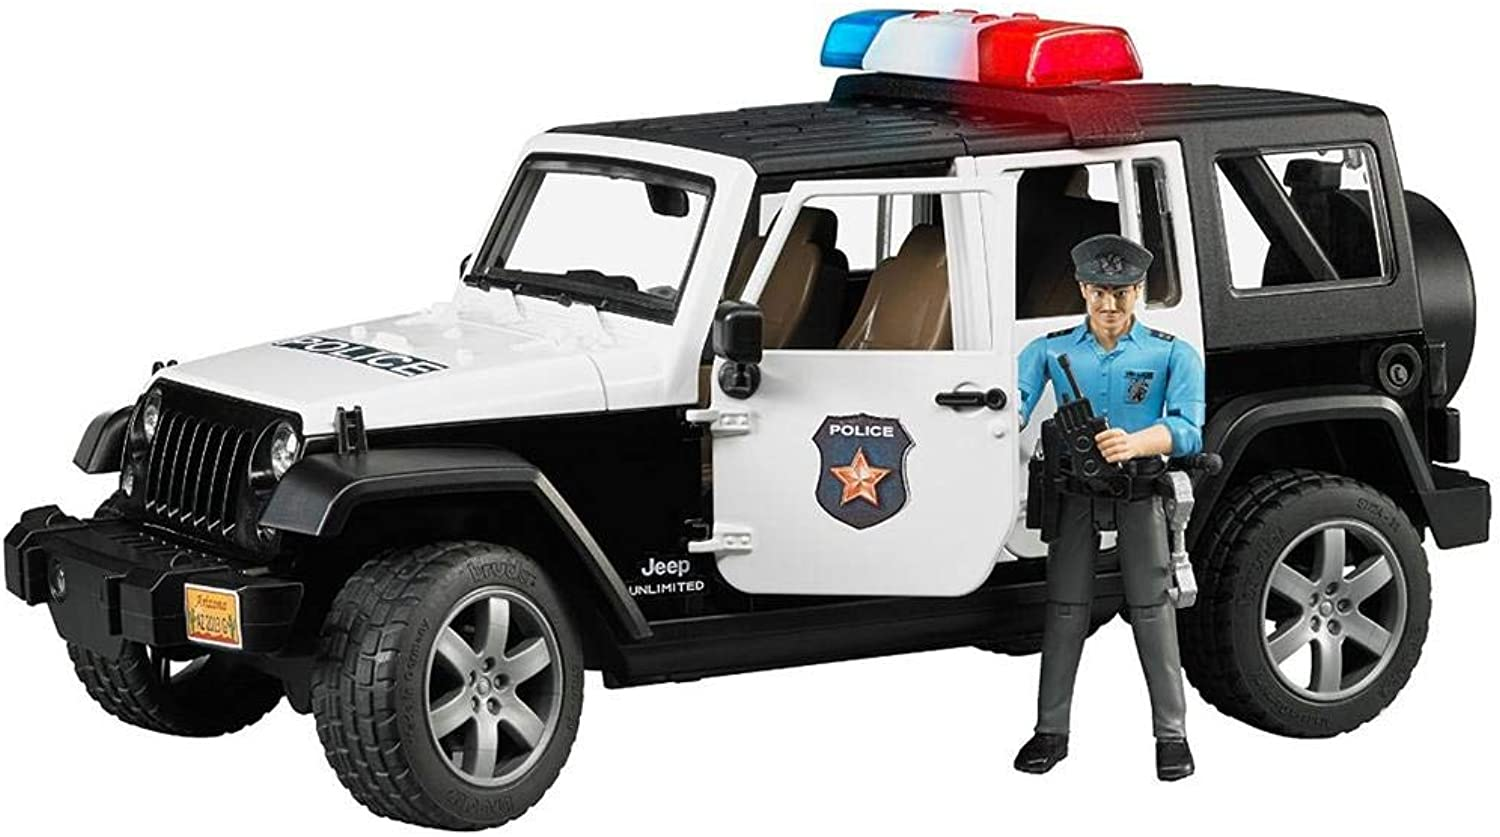 AGROAMBIENTE Toy playback Jeep Wrangler Unlimited Rubicon police car, L & D and policeman